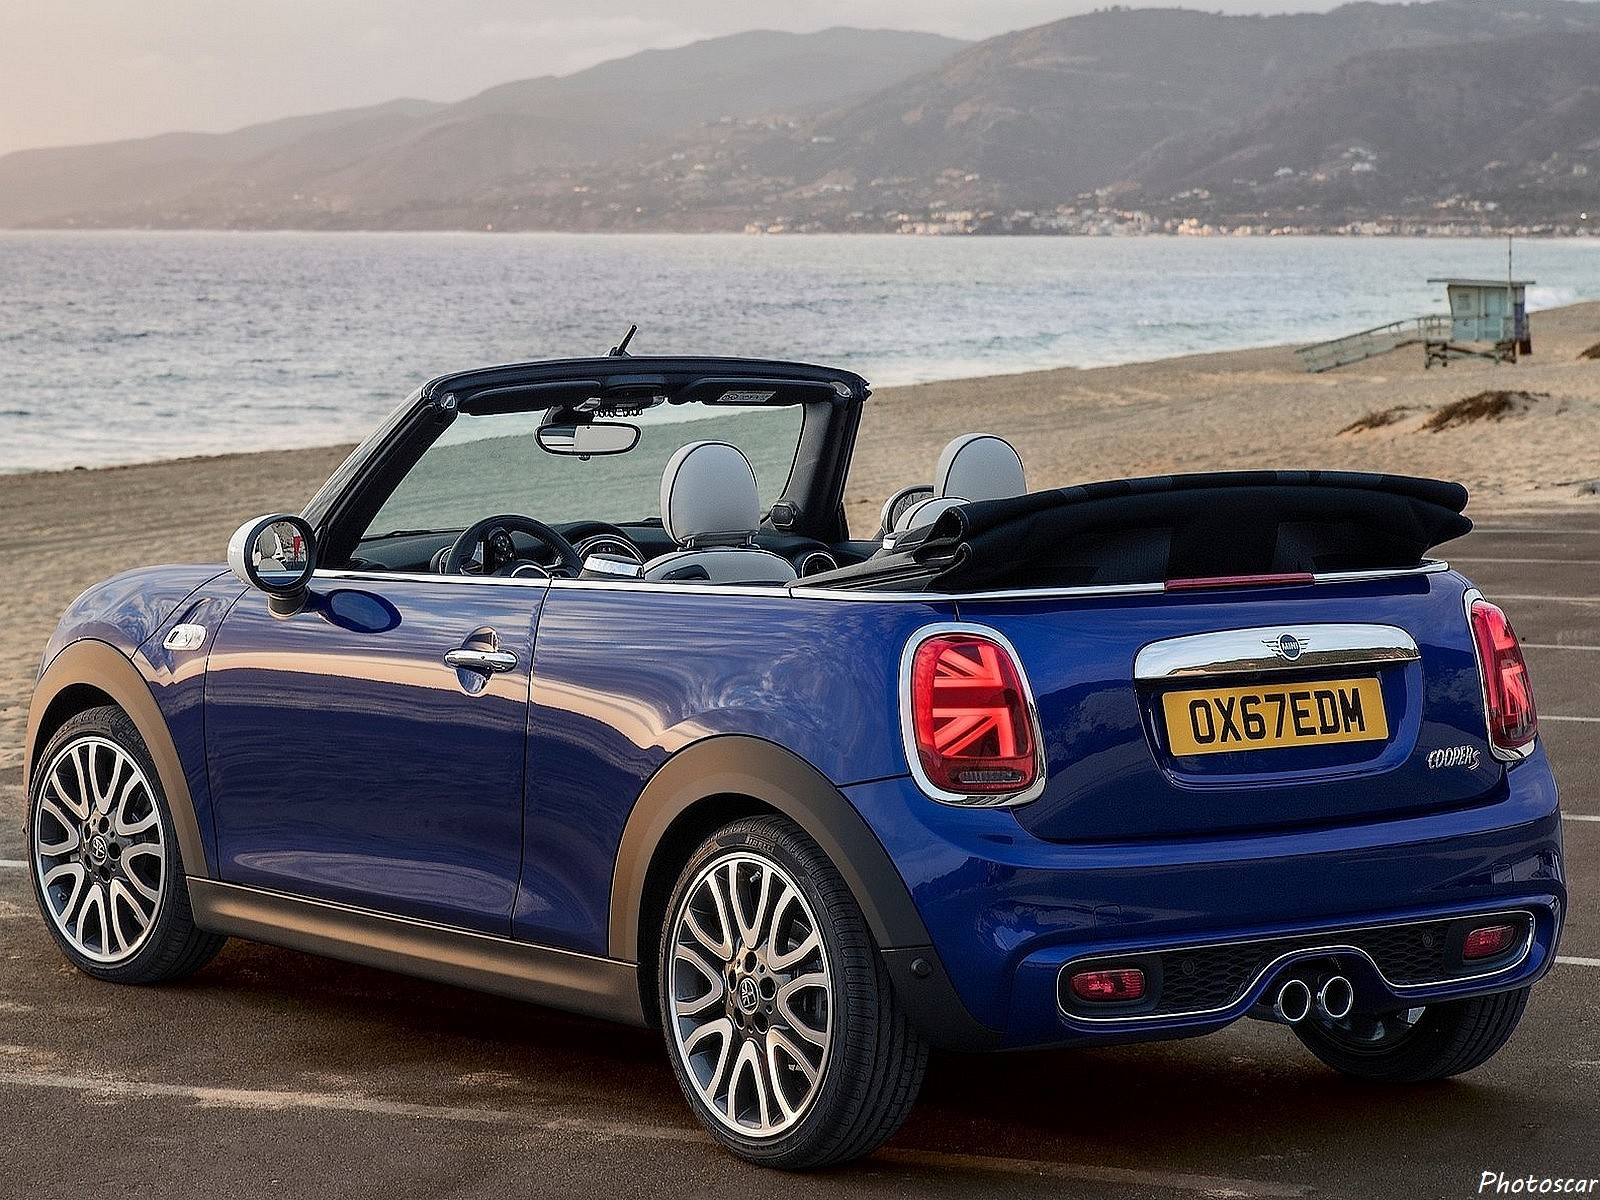 mini cooper s convertible 2019 voitures d capotables de luxe. Black Bedroom Furniture Sets. Home Design Ideas